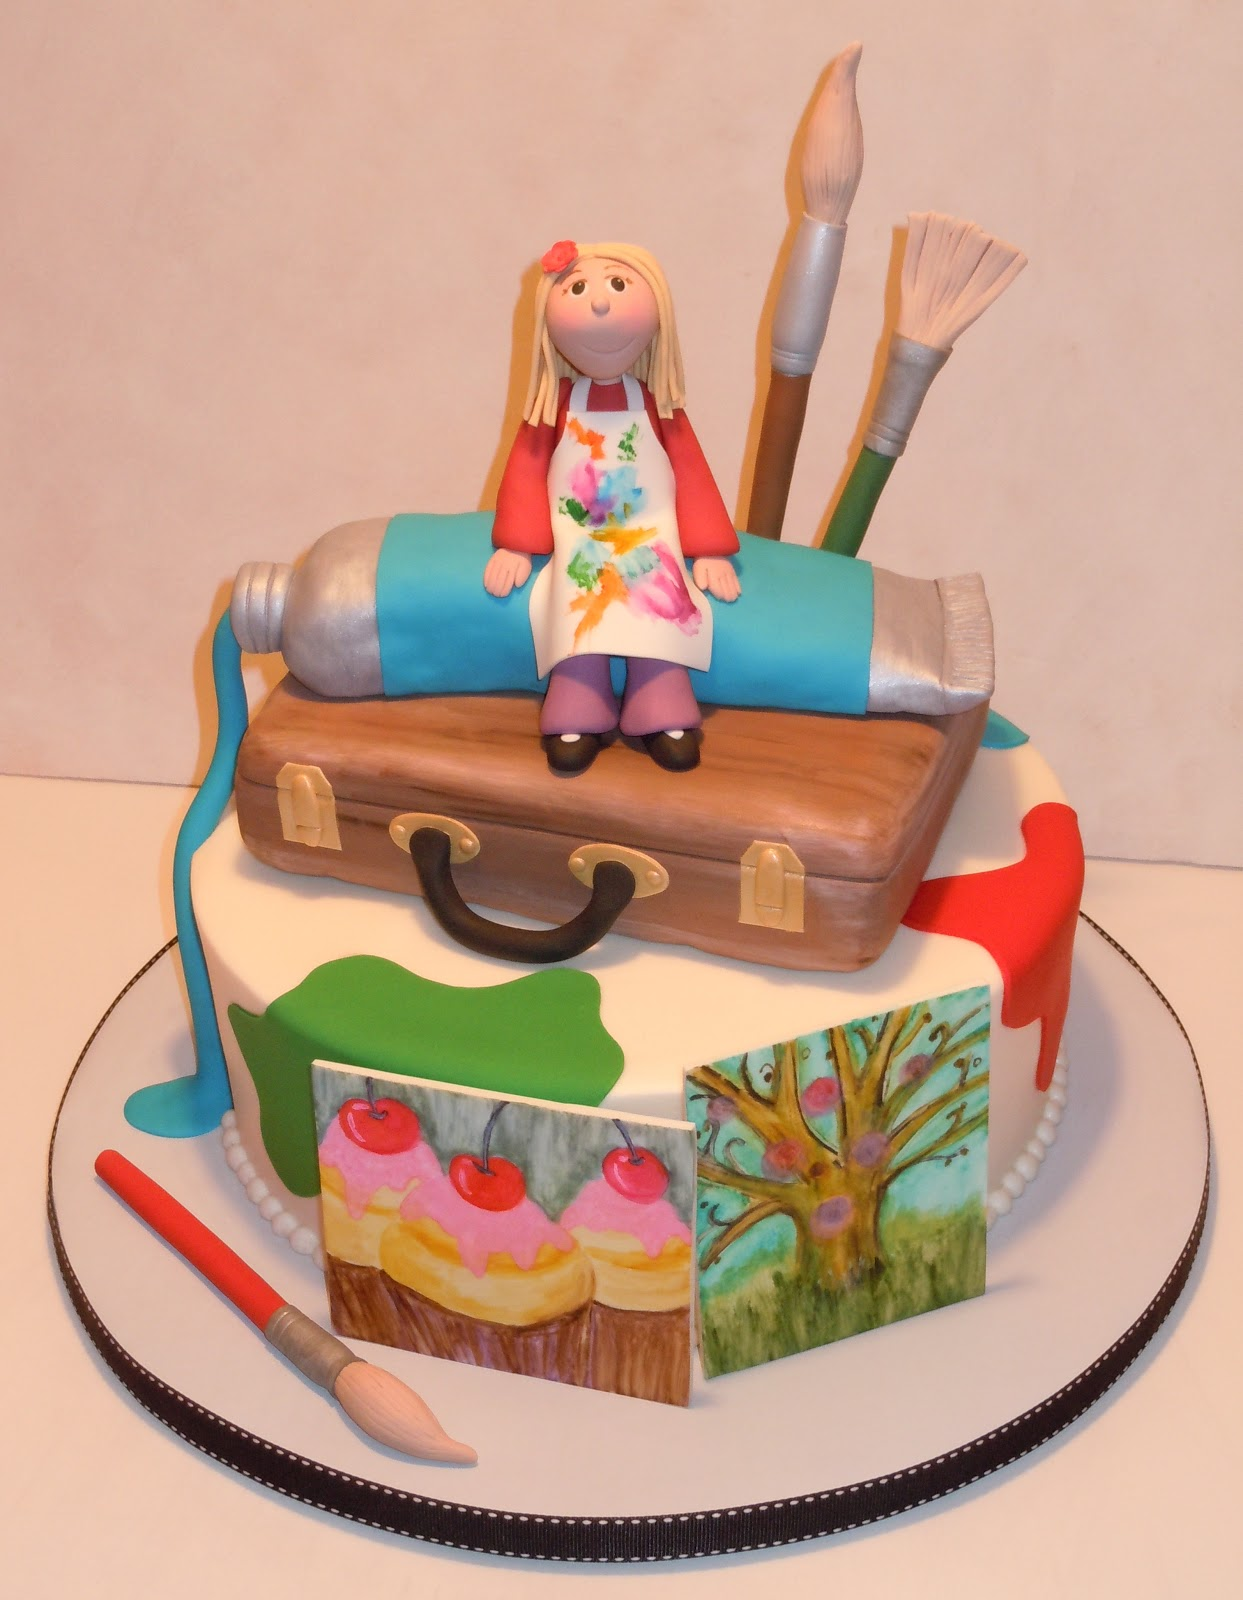 Kids Birthday cakes on Pinterest Rainbow Cakes, Artist ...